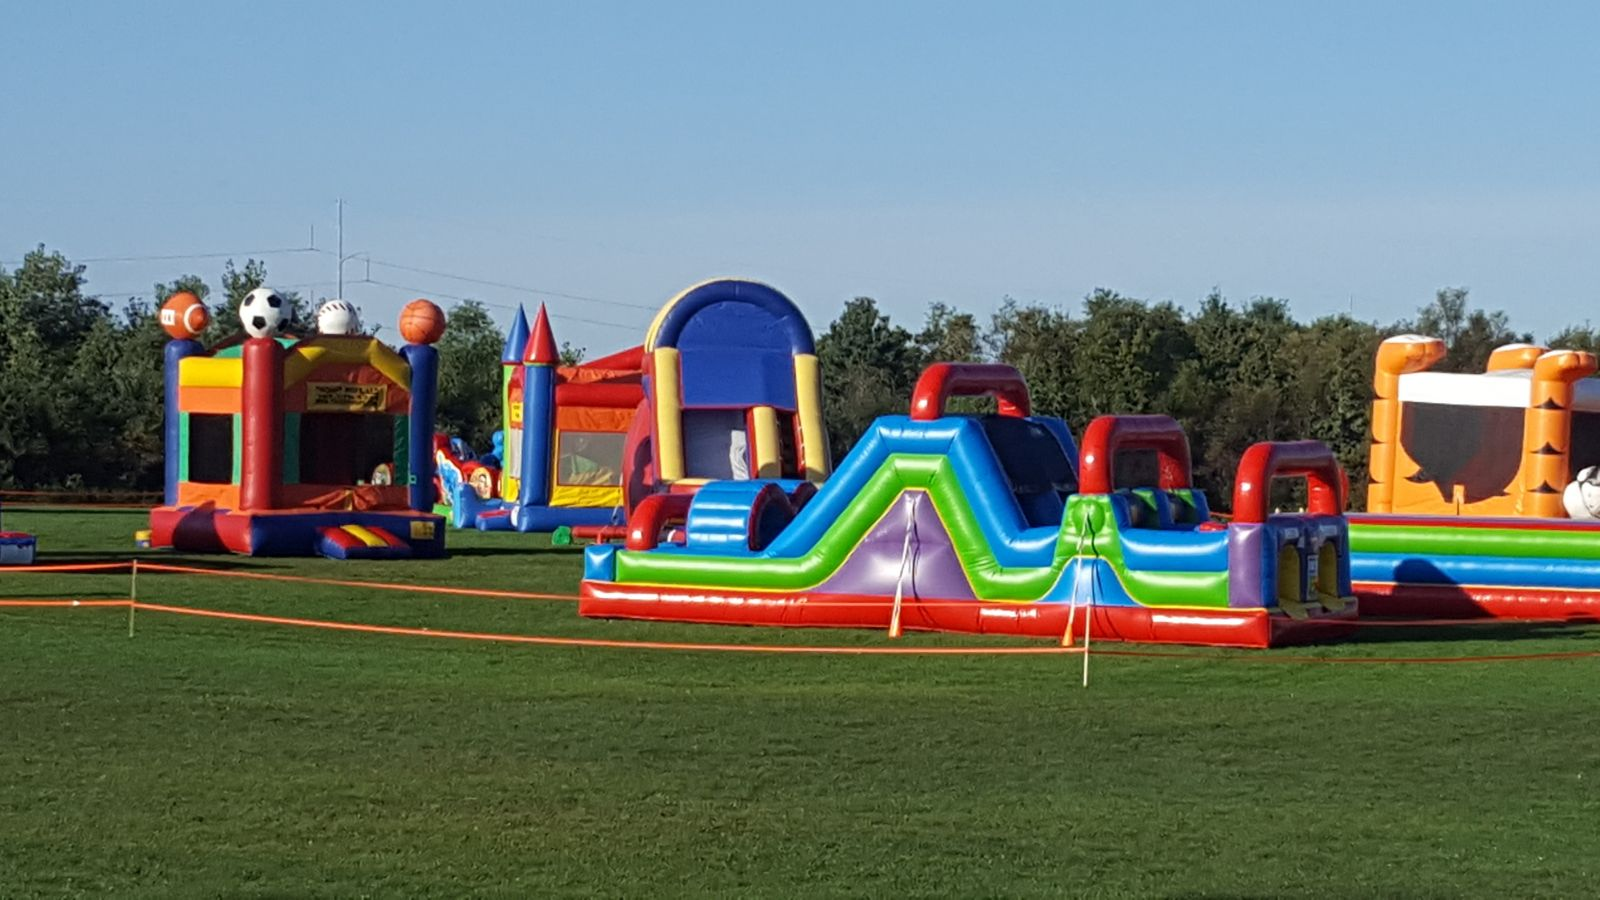 31' Wacky 7-Element Obstacle Course with other Bounce House Rentals at church event.